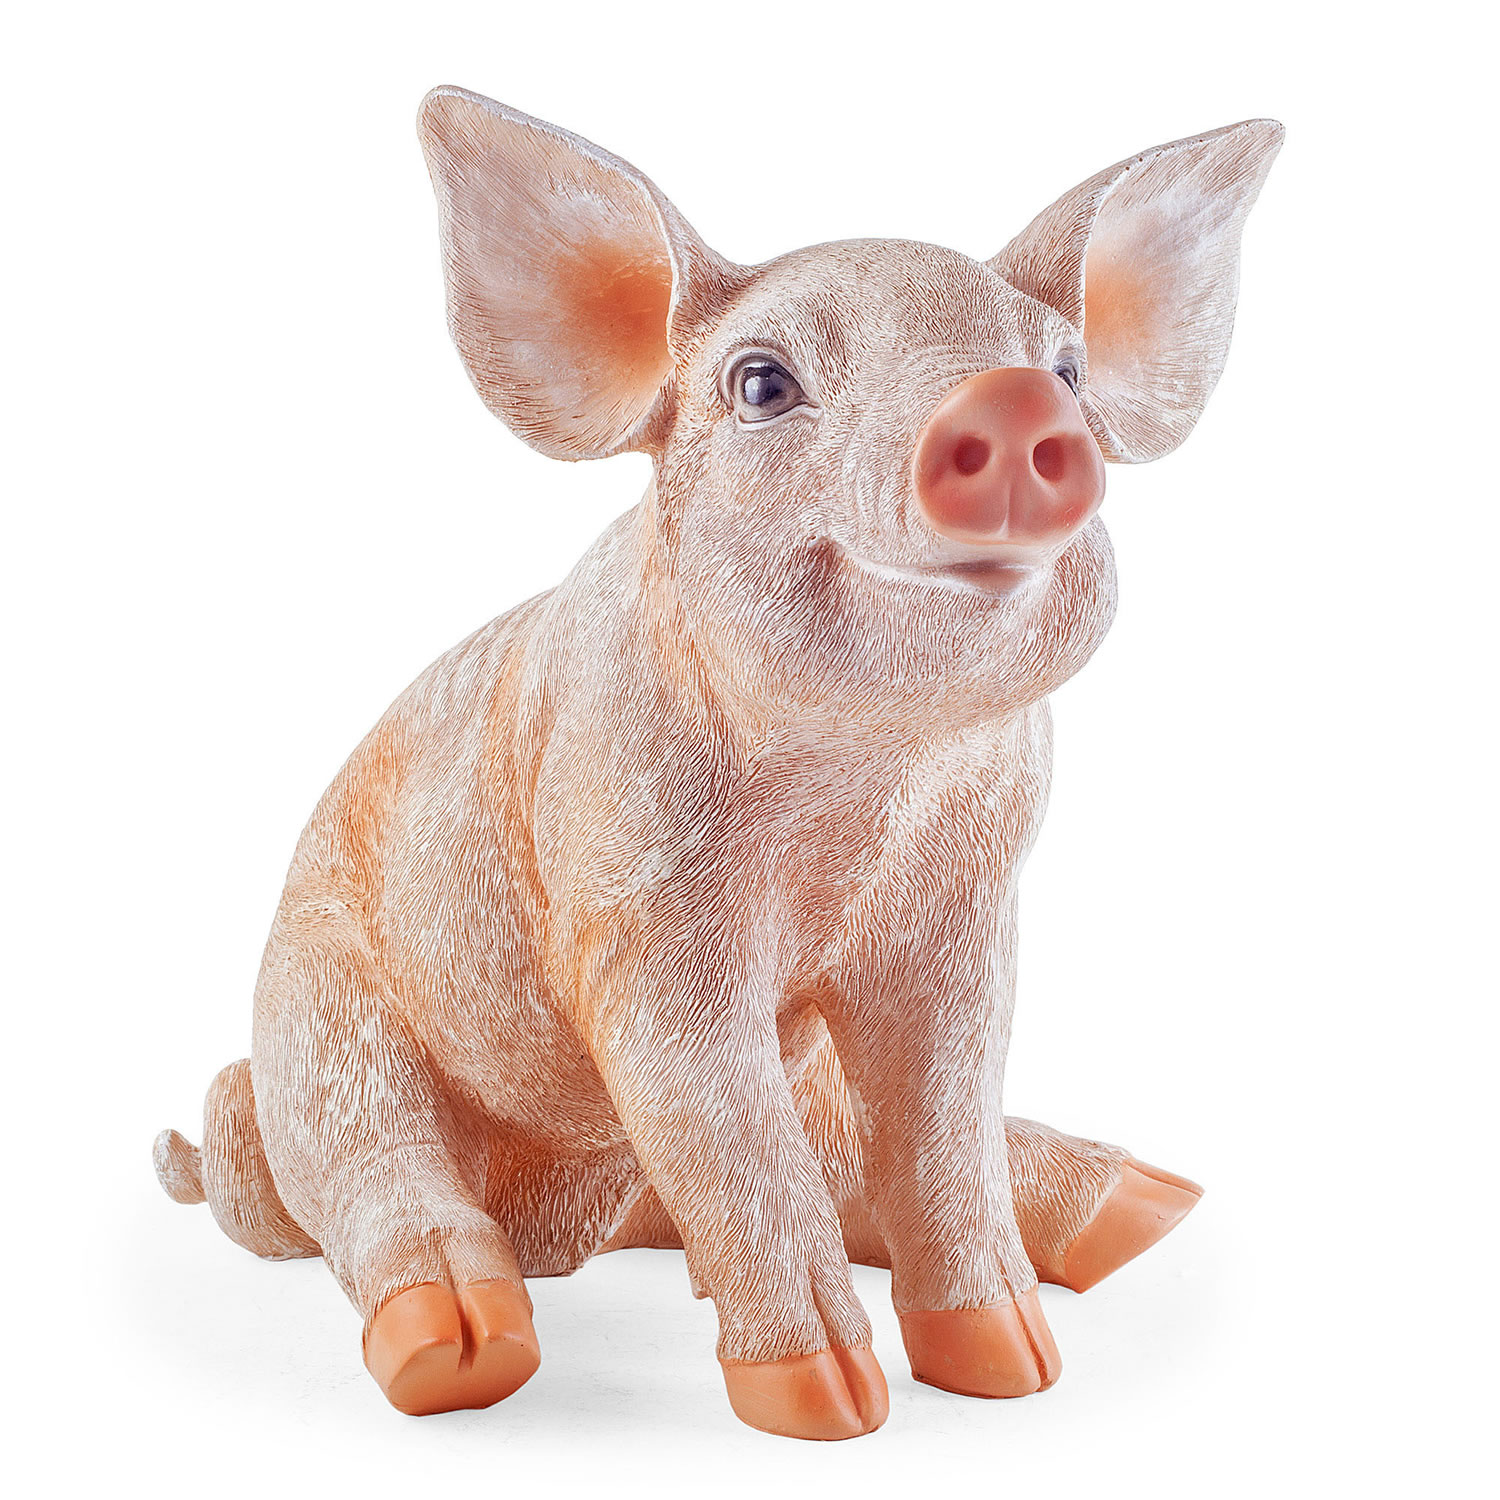 Petunia The Large Realistic Resin Sitting Pig Garden